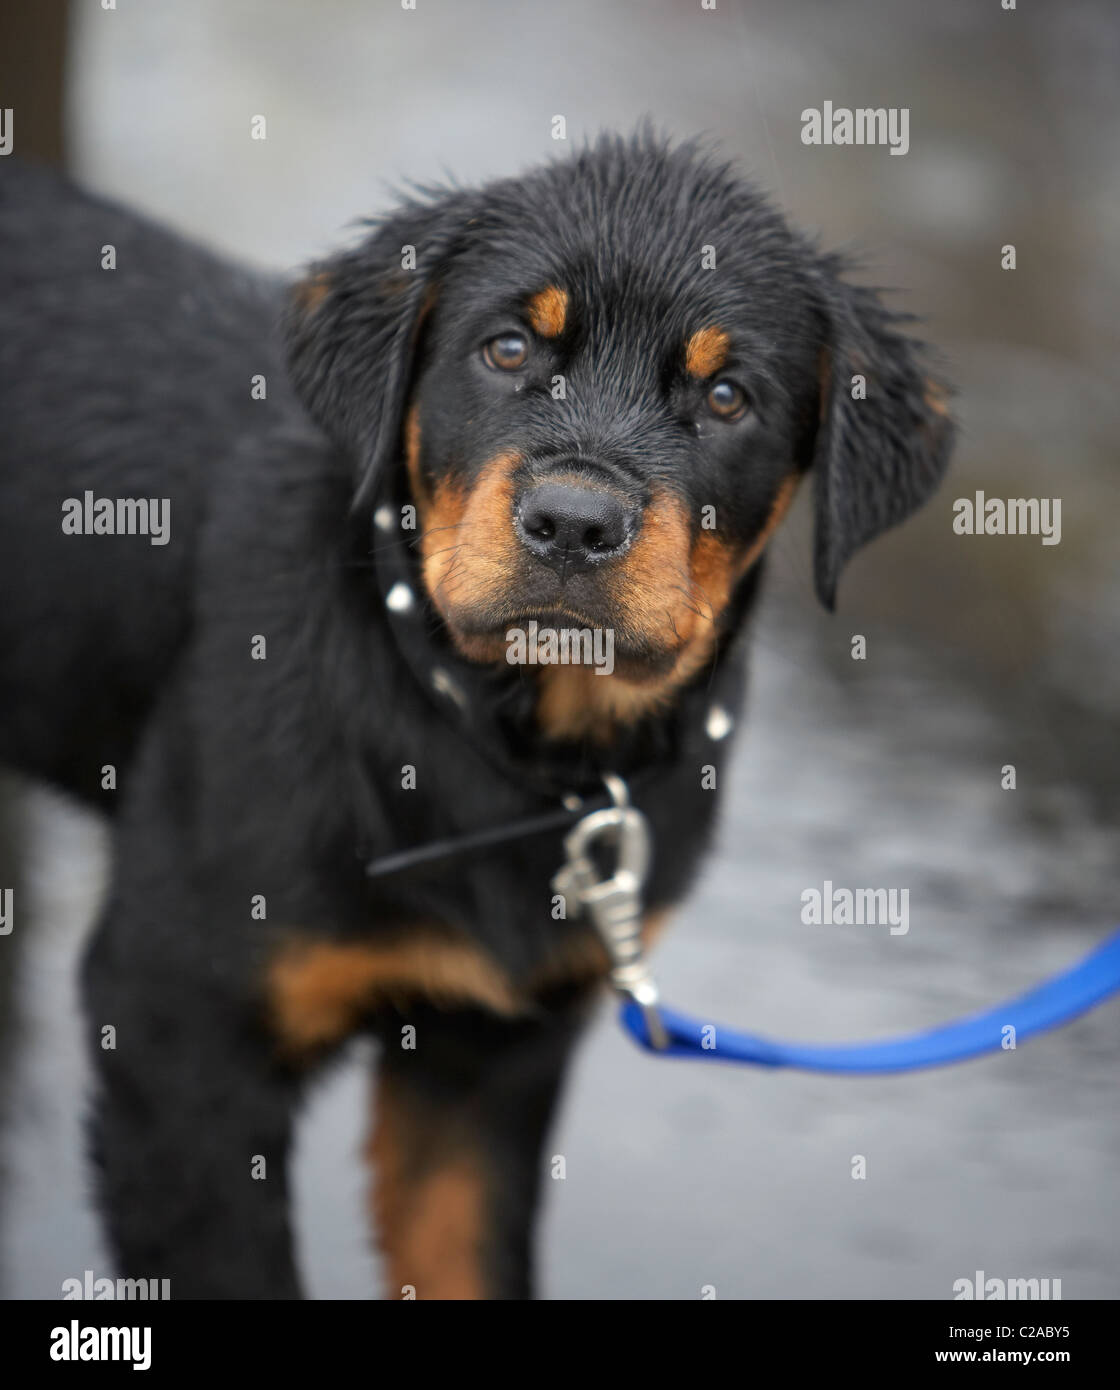 Rottweiler Puppy Stock Photos Rottweiler Puppy Stock Images Alamy